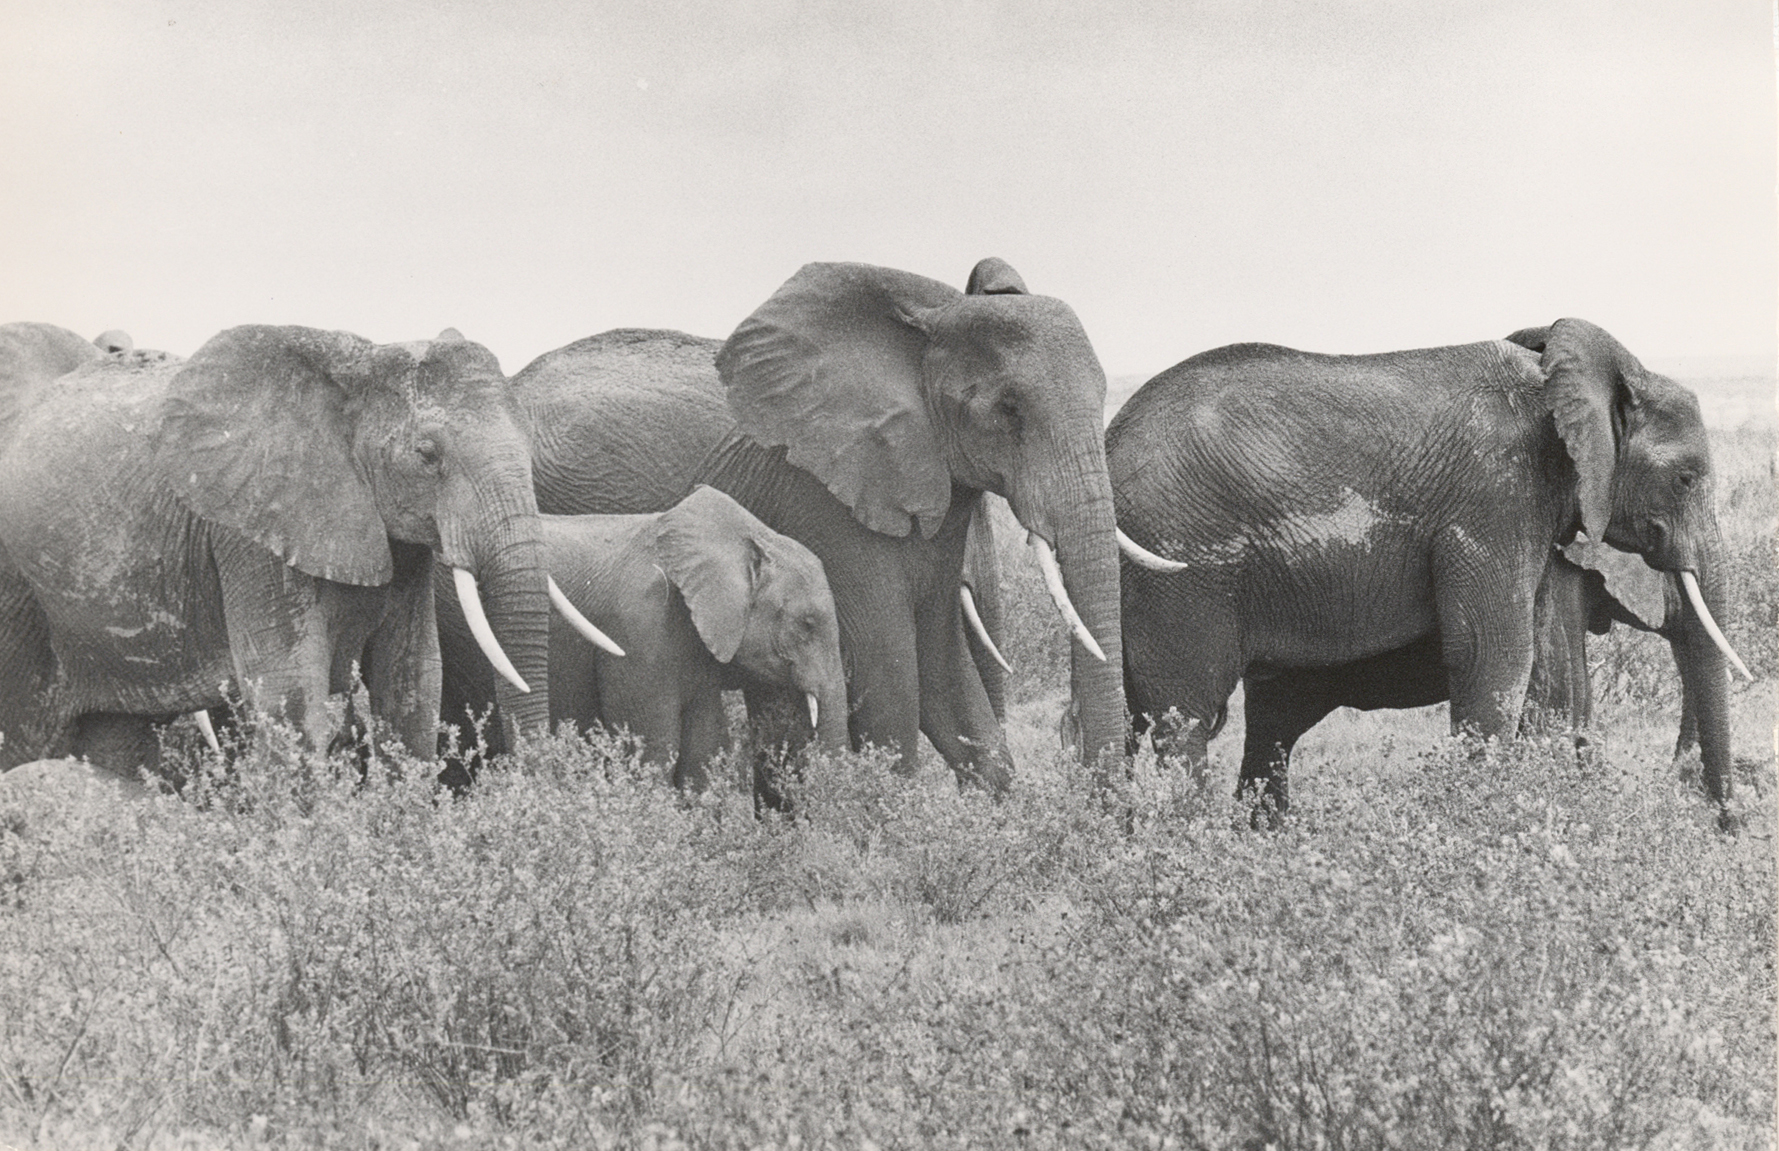 A group of elephants walk together in a black and white photograph